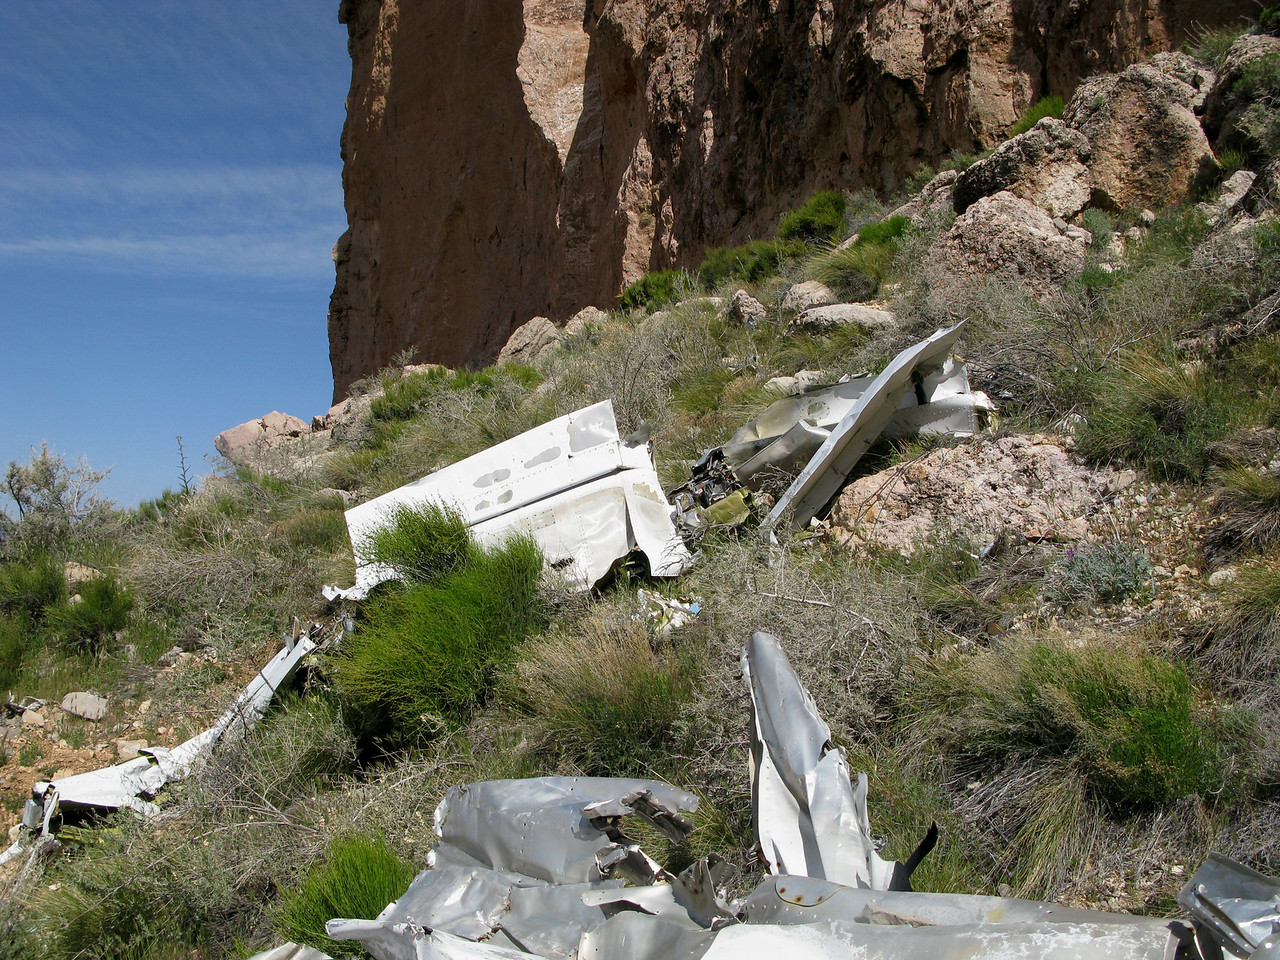 The left wing structure came to rest about thirty feet from the fuselage and tail section.